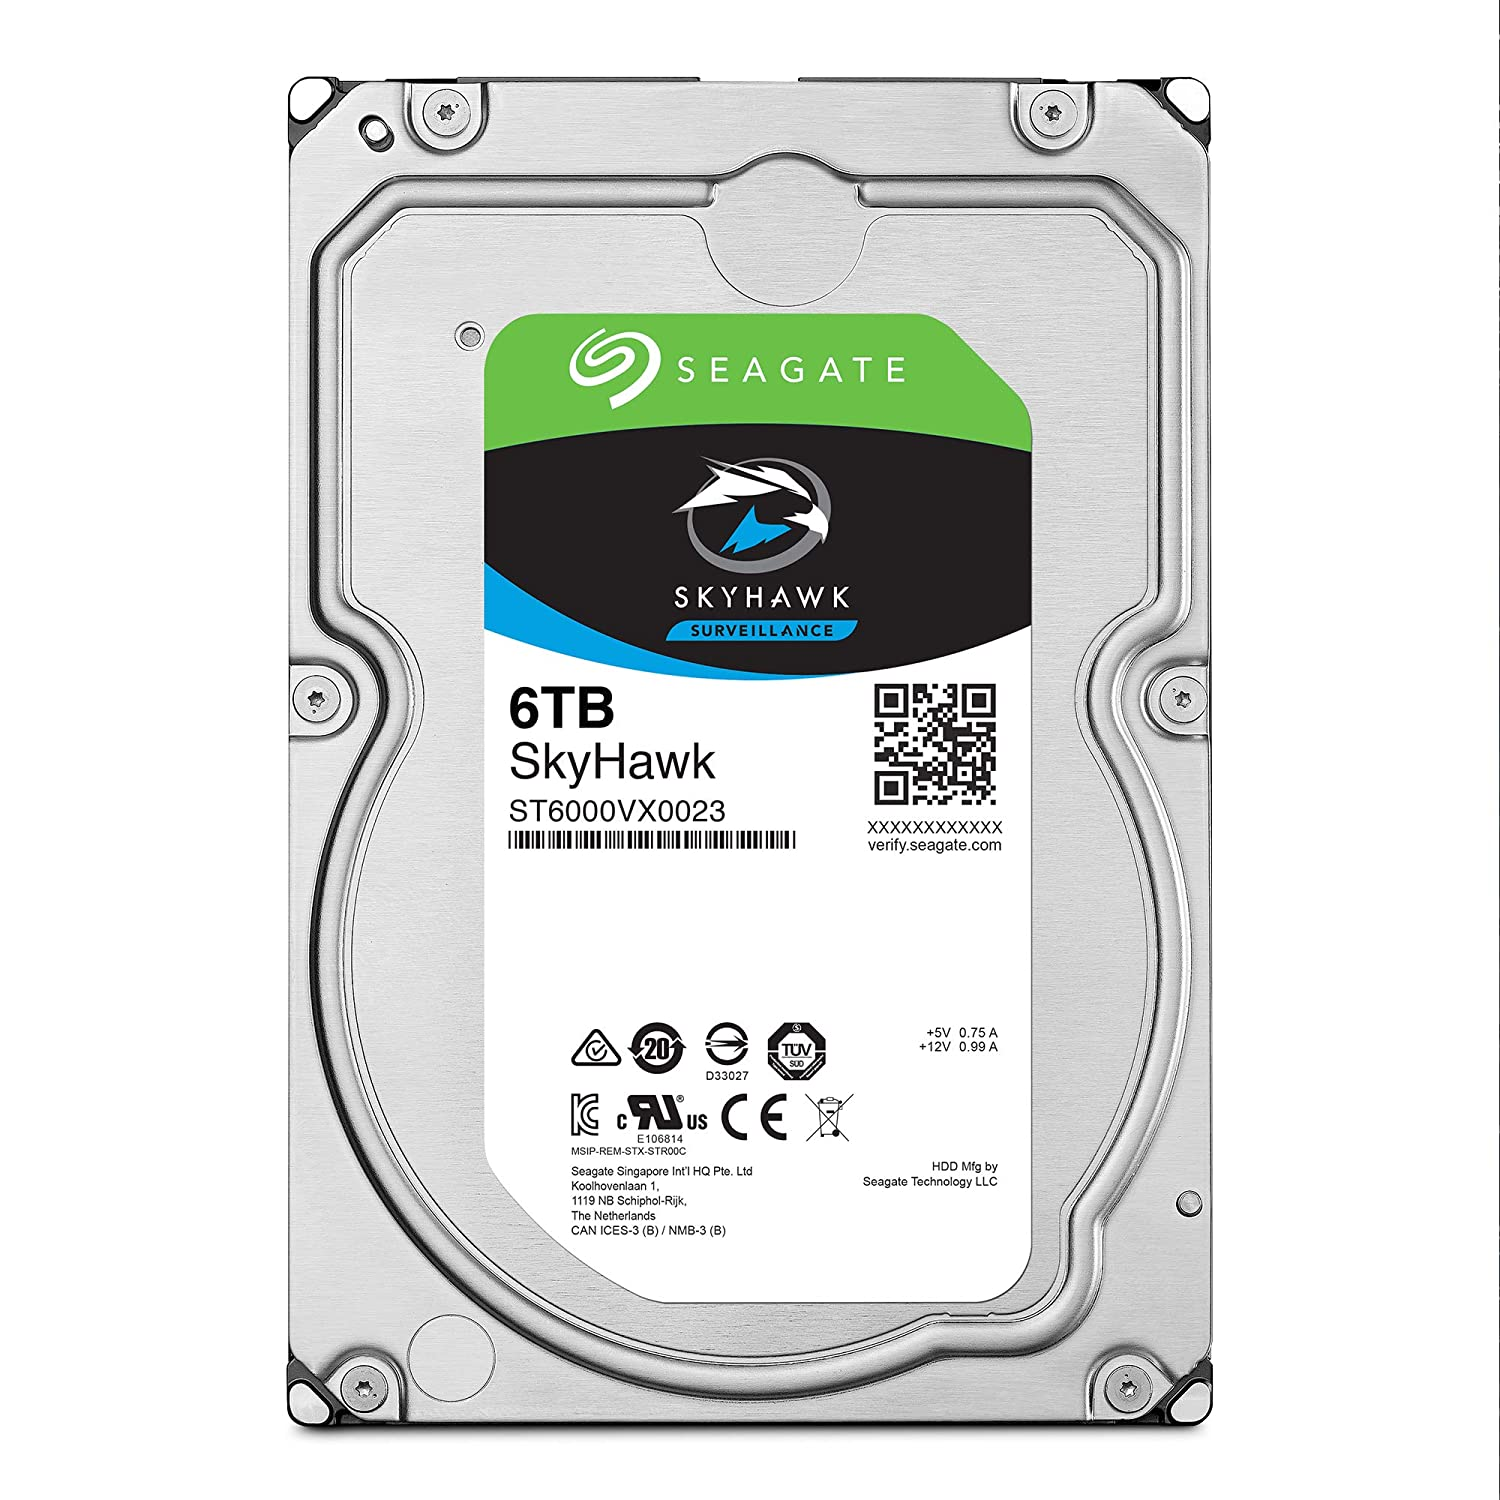 Seagate Skyhawk 6TB Surveillance Internal Hard Drive HDD – 3.5 Inch SATA 6GB/s 256MB Cache for DVR NVR Security Camera System with Drive Health Management – Frustration Free Packaging (ST6000VX001)